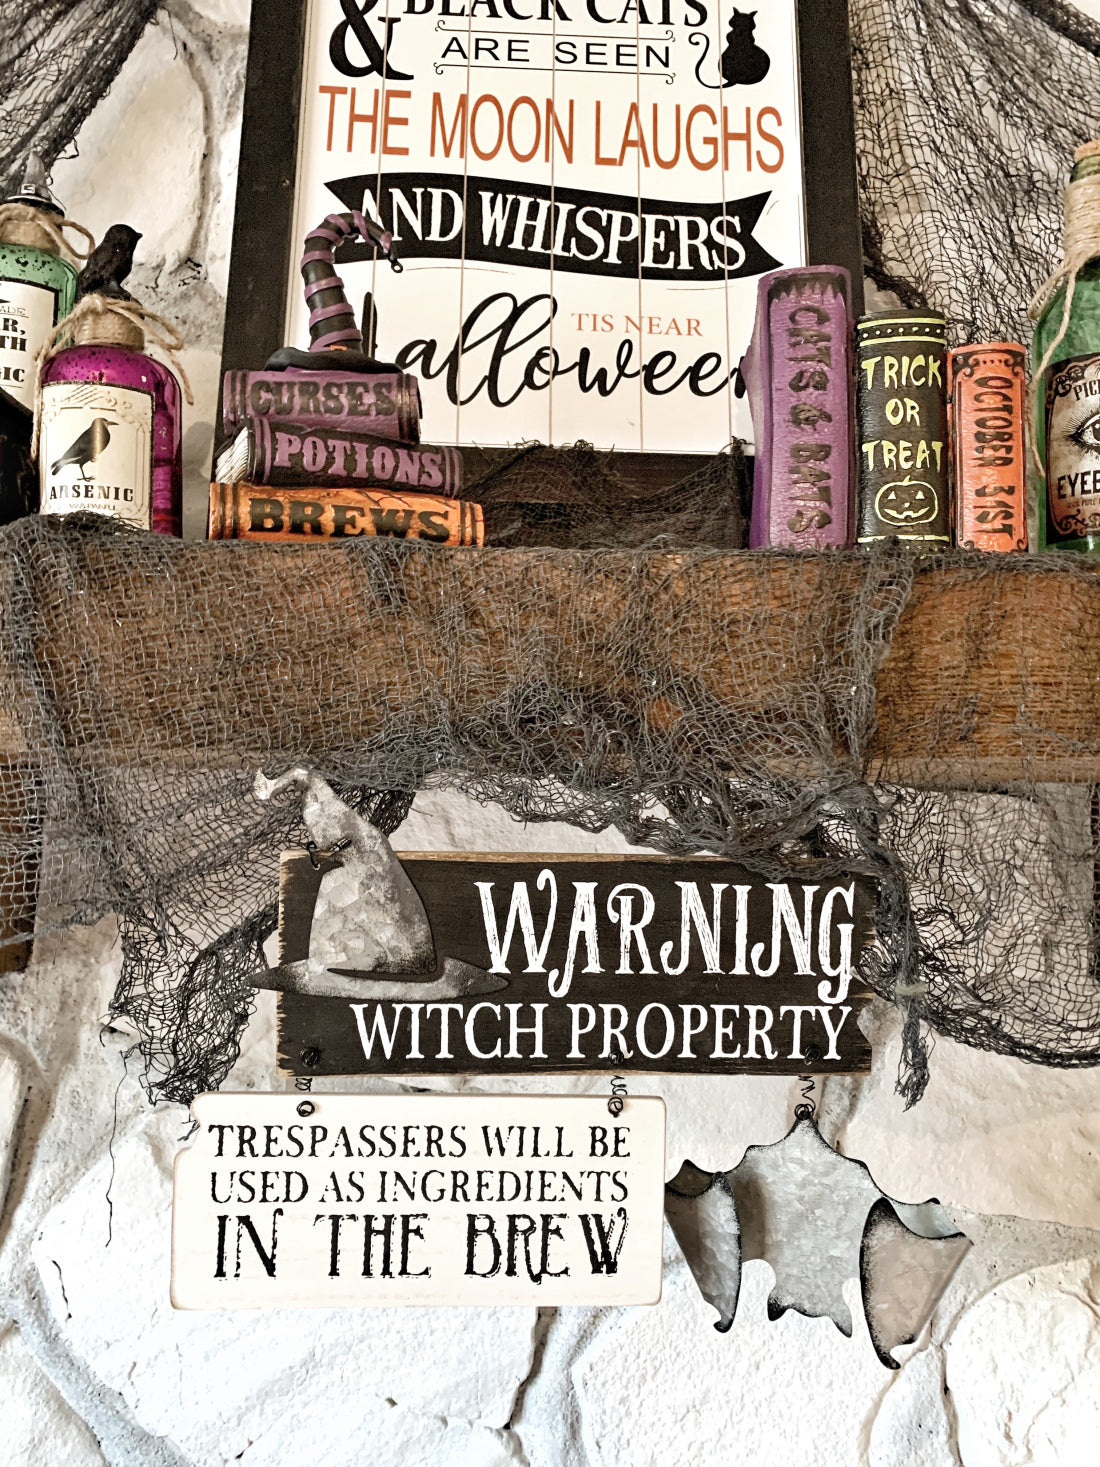 A wooden sign reads: Trespassers will be used as ingredients in the brew